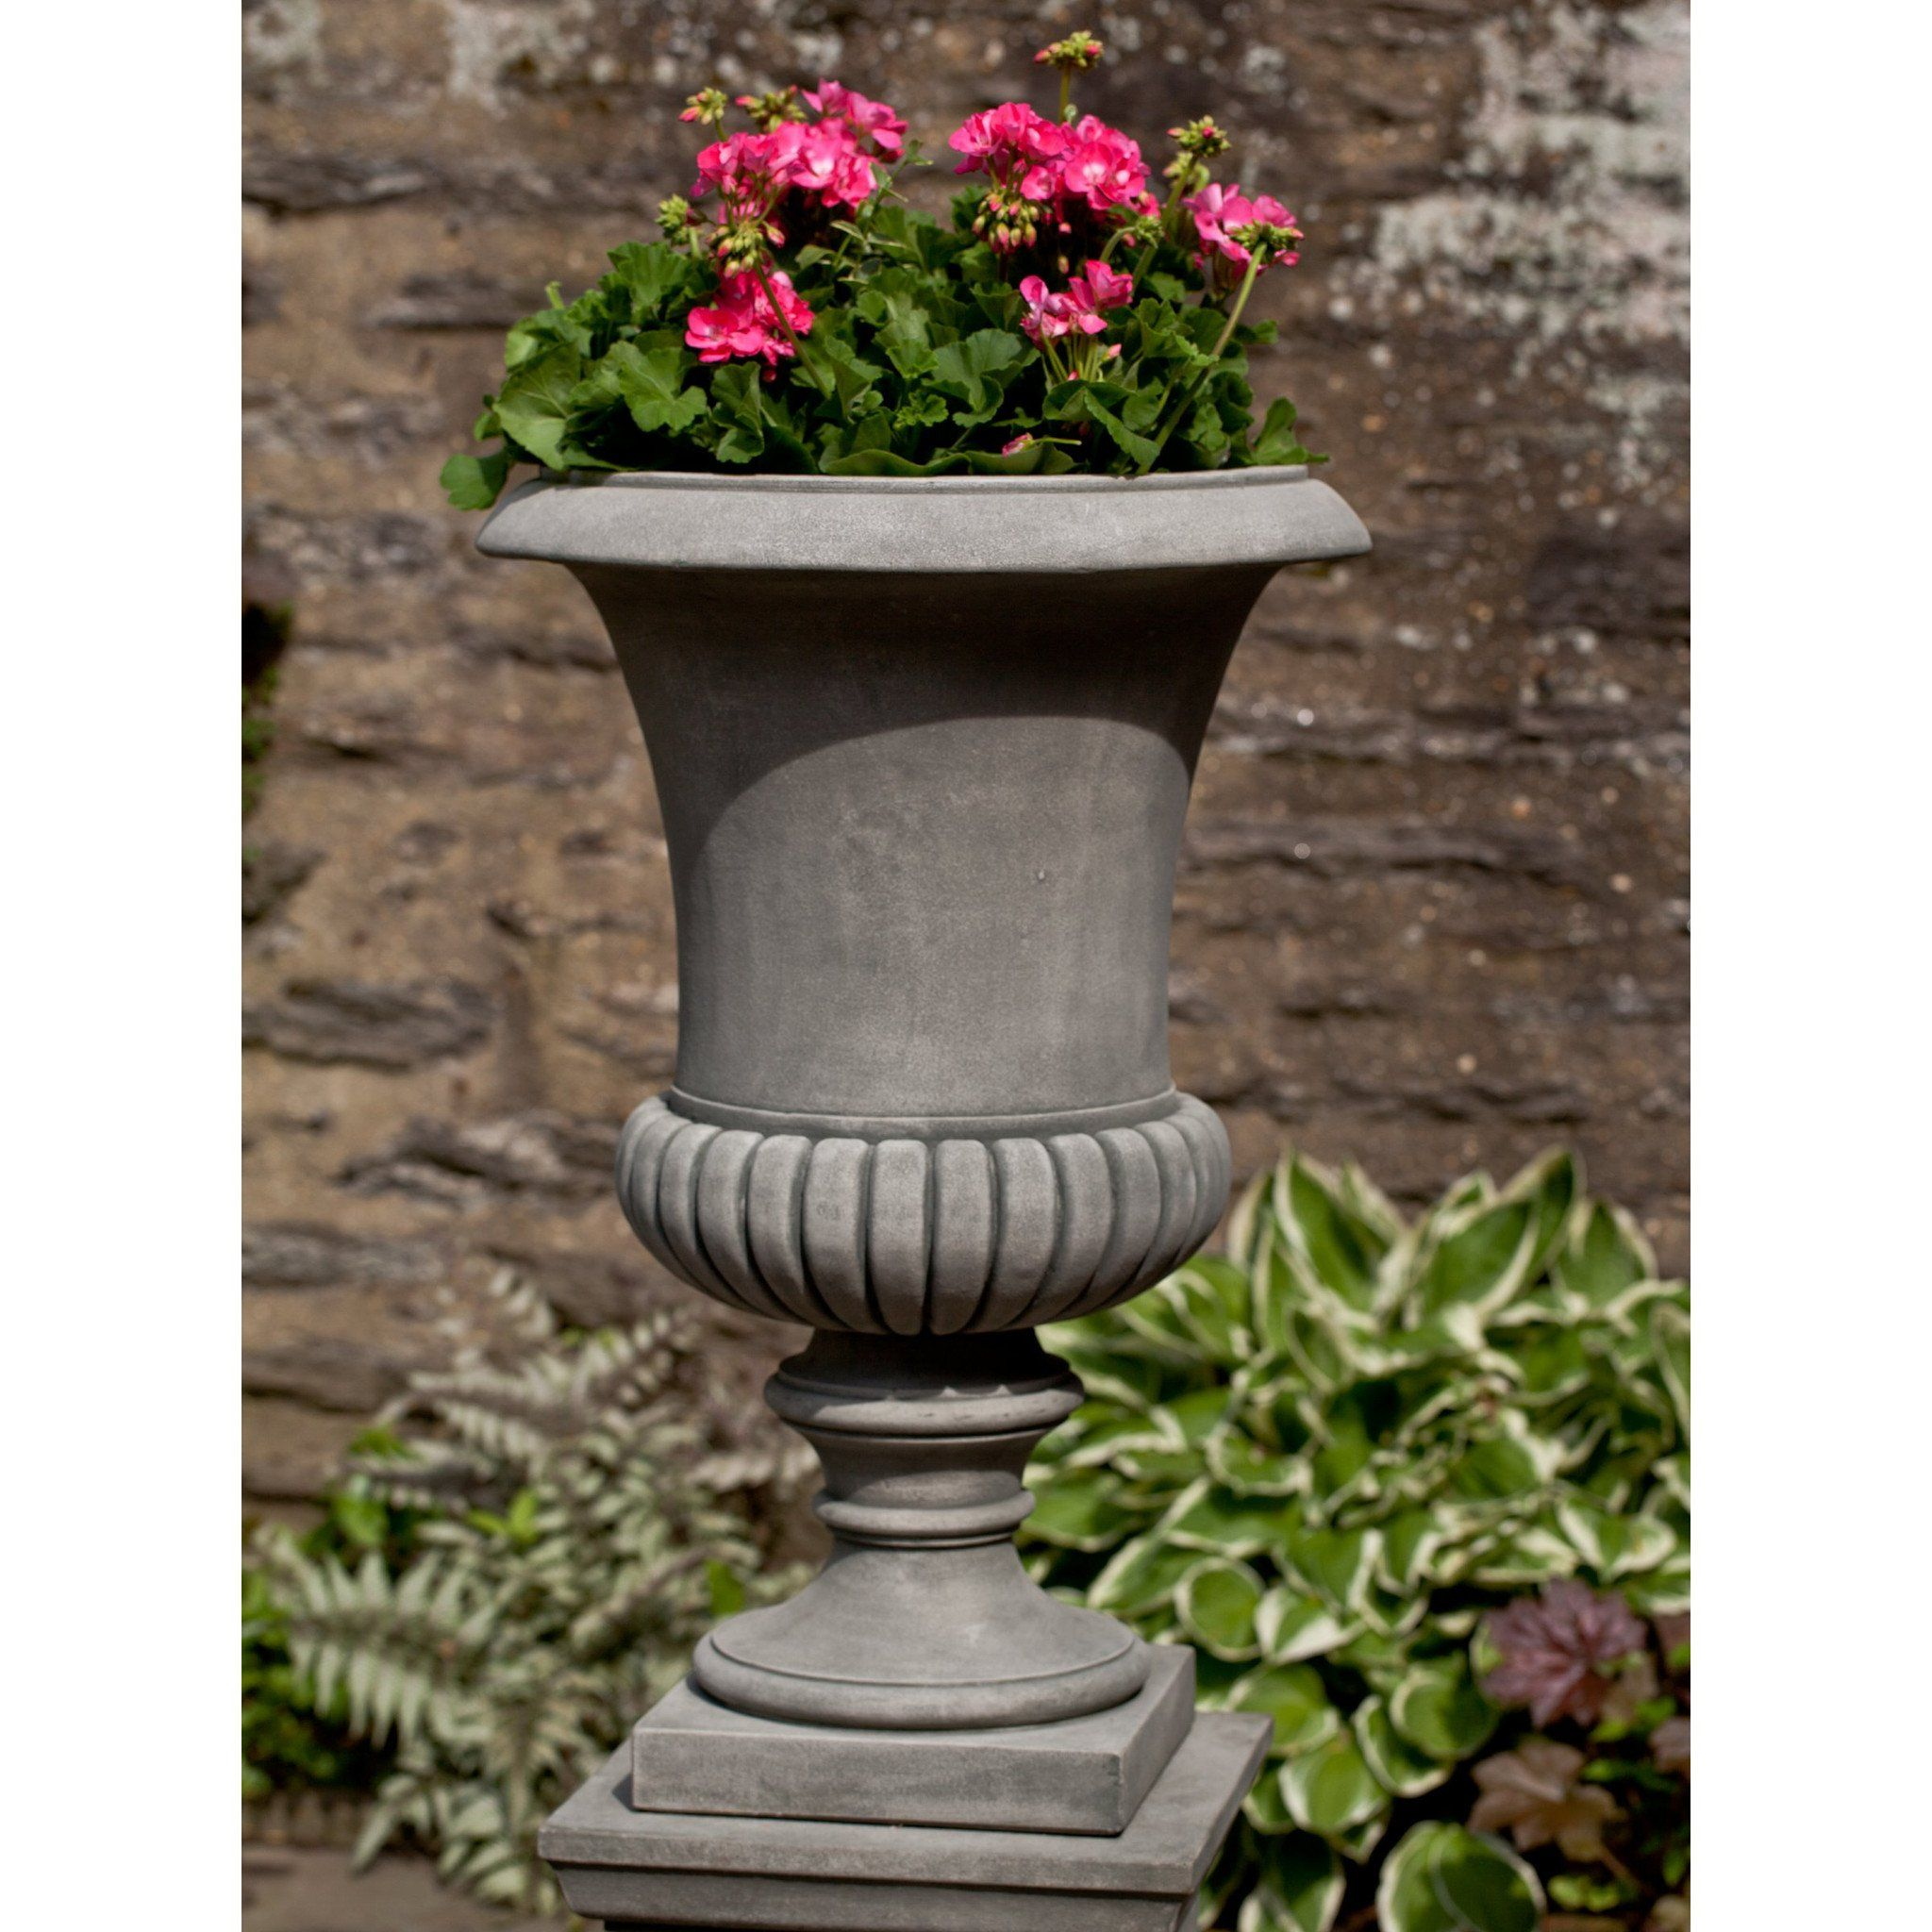 inch knight antique green shipping free christopher planter product home adea overstock garden urns today urn italian